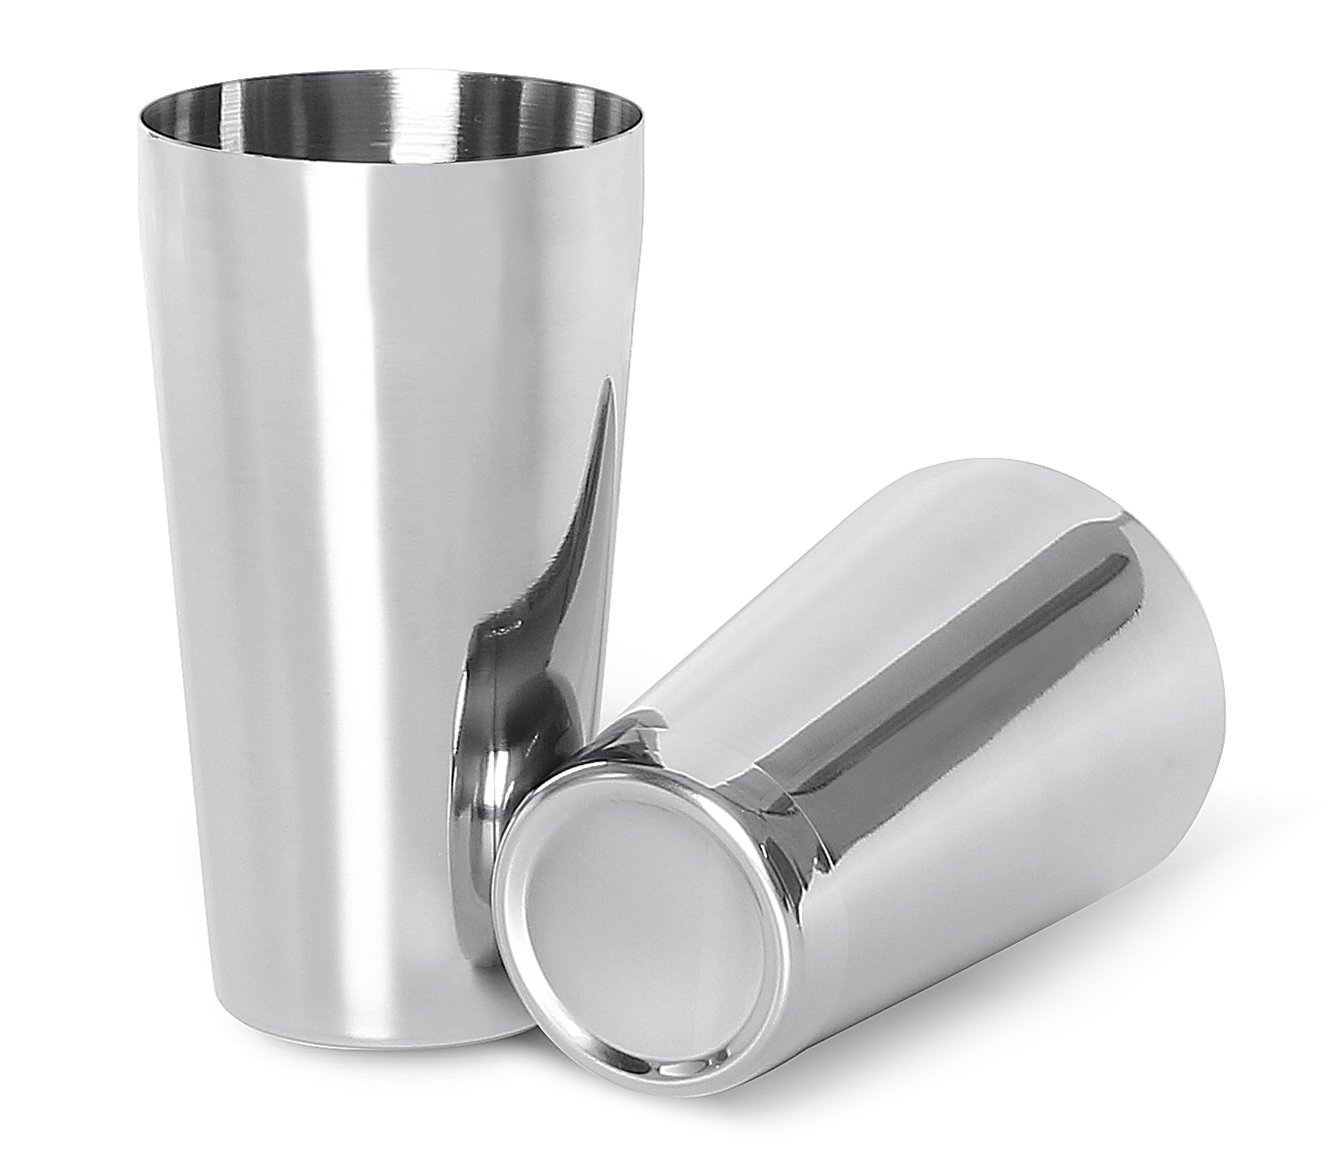 LANZON Boston Cocktail Shaker: 2-Piece All Stainless Steel Boston Shaker Tins, 18oz Weighted & 26oz Unweighted Boston Cocktail Shaker Bar Set for Professional Bartenders and Home Cocktail Lovers LLY-00031